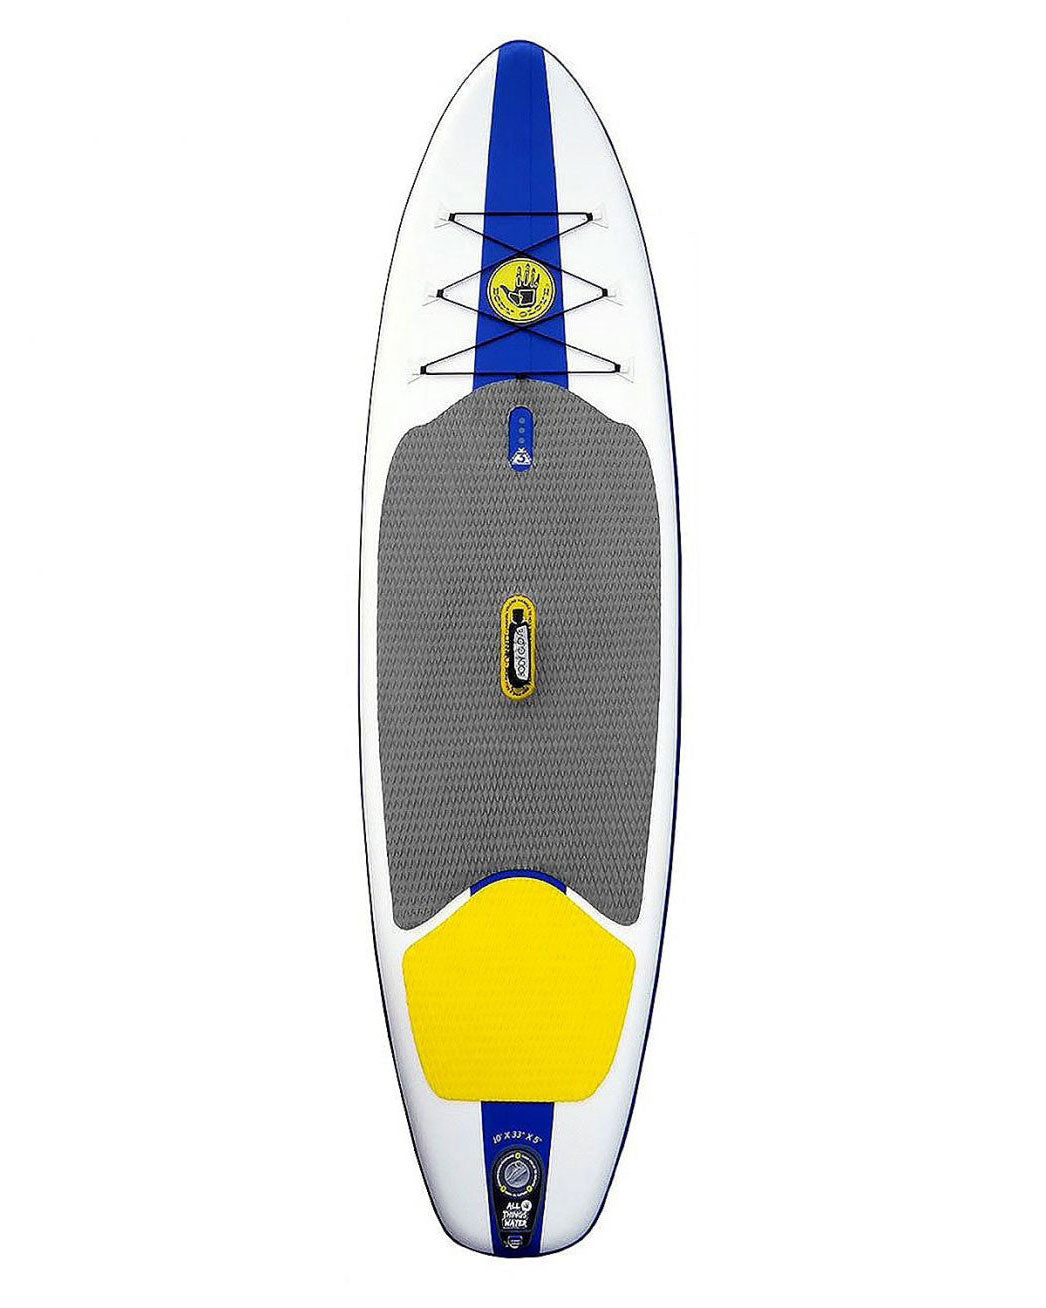 Cruiser 10 Inflatable Stand Up Paddle Board Isup With